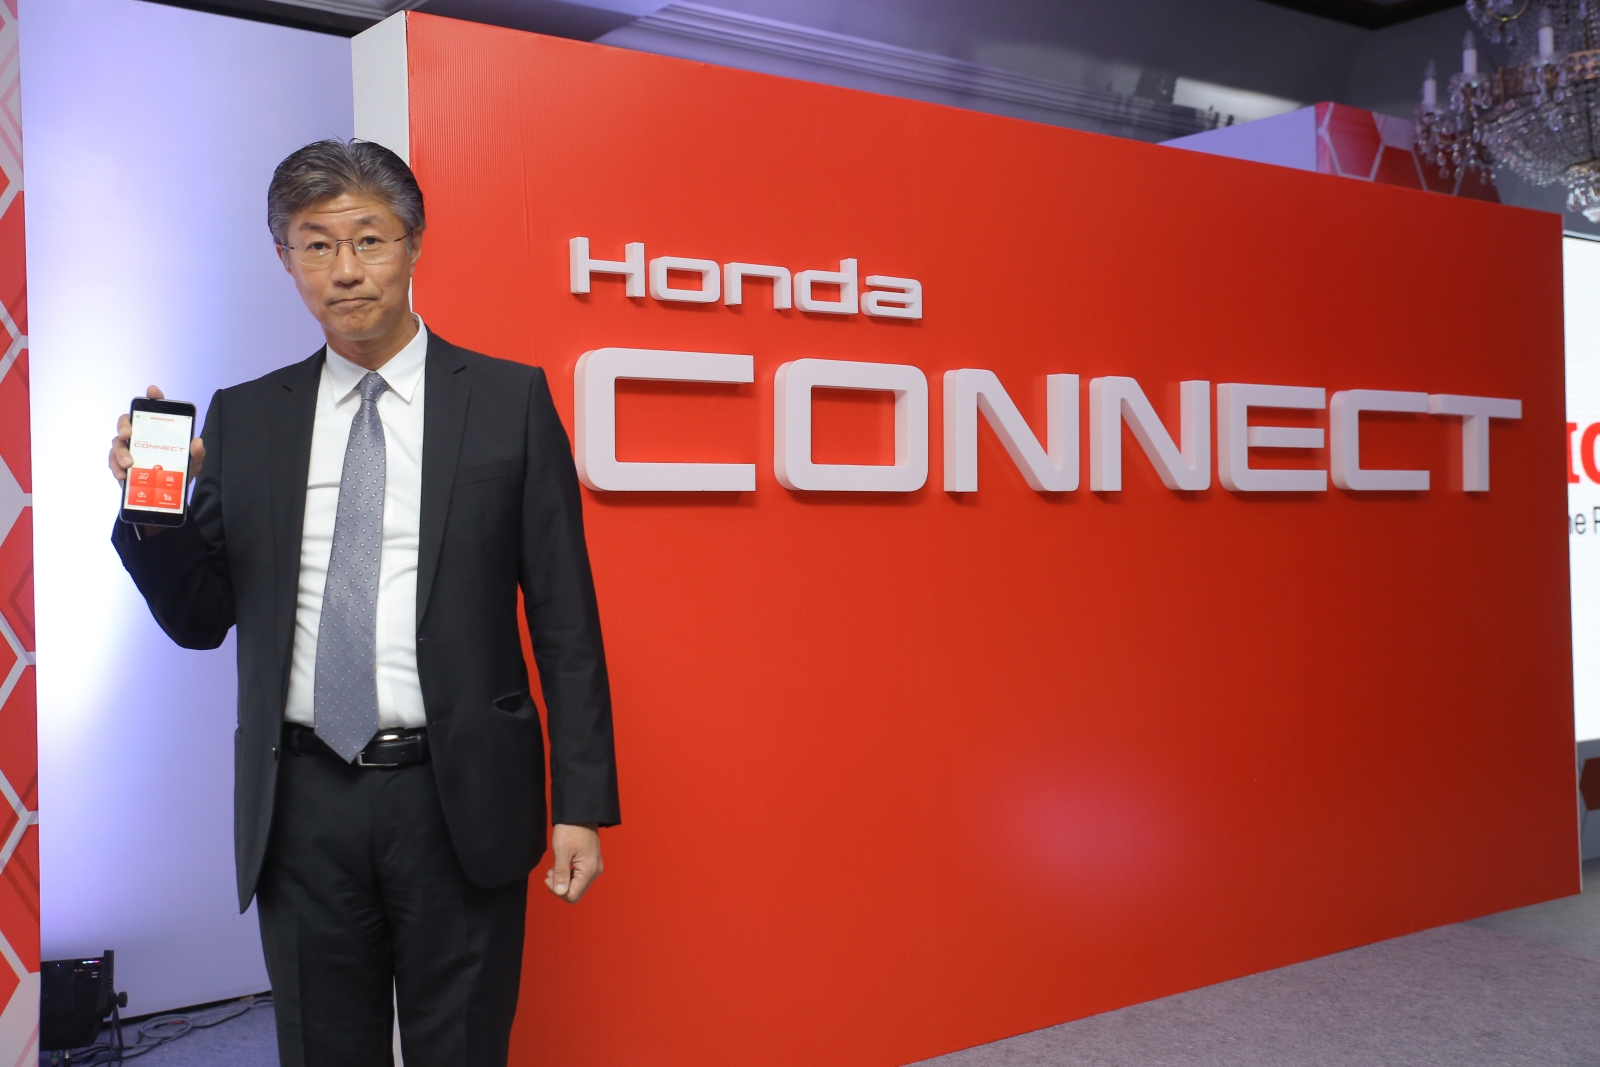 Honda Cars India Introduces A New App Honda Connect Motoroids